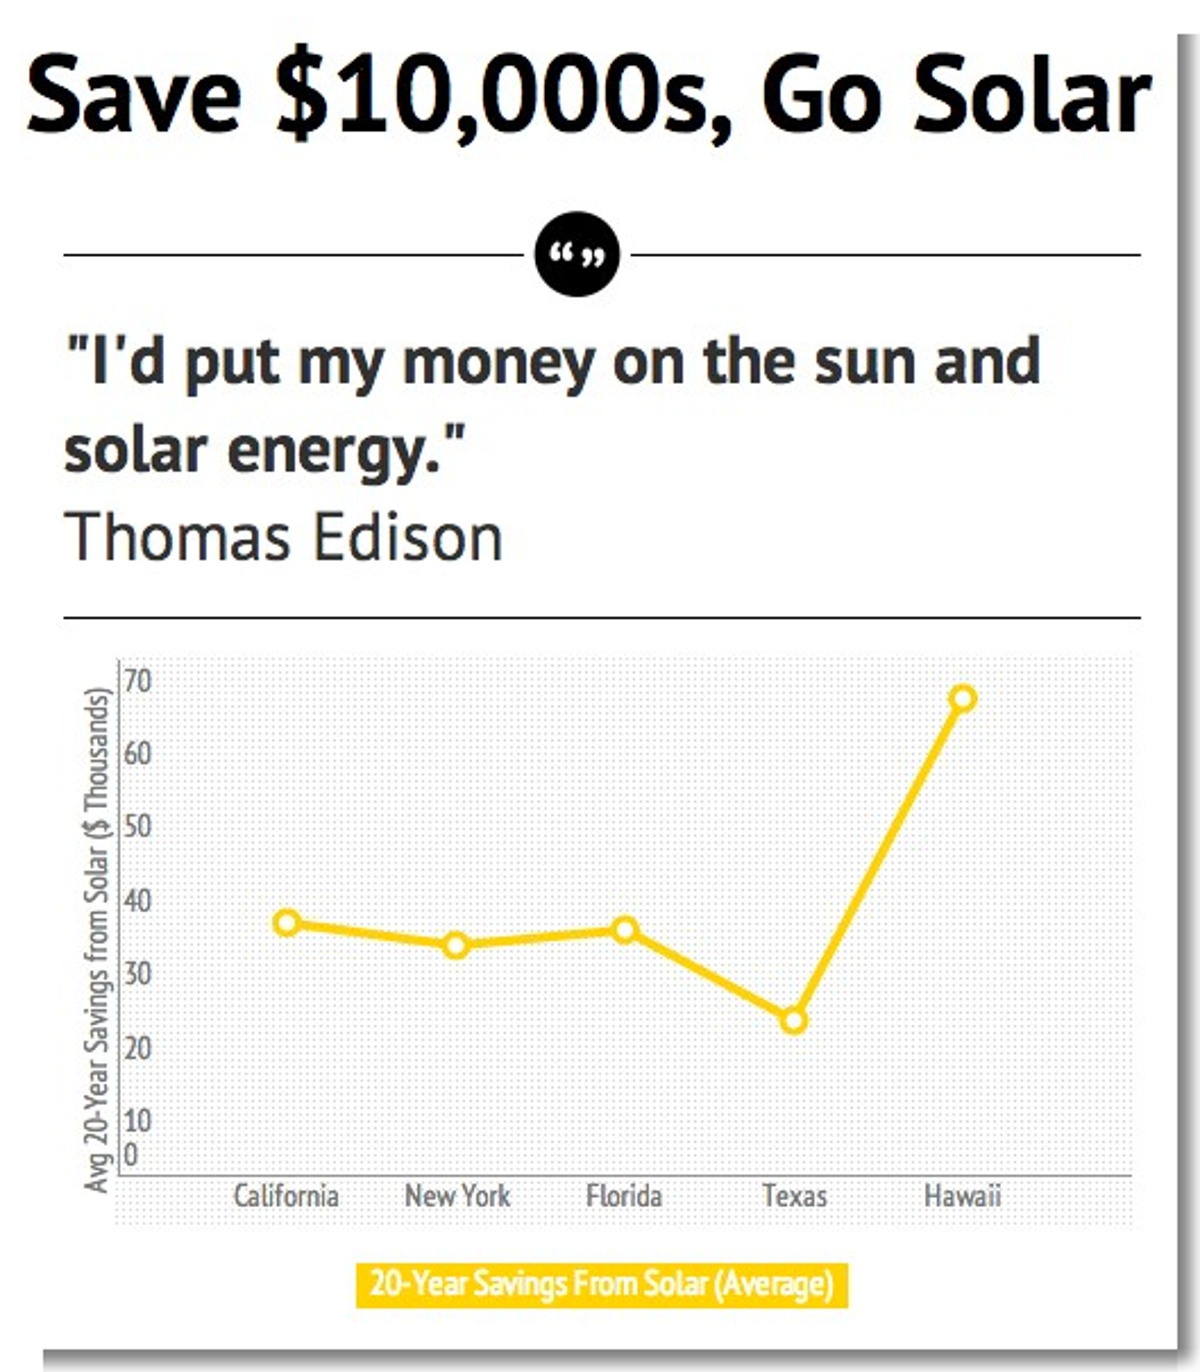 What Is The Current Cost Of Solar Panels?